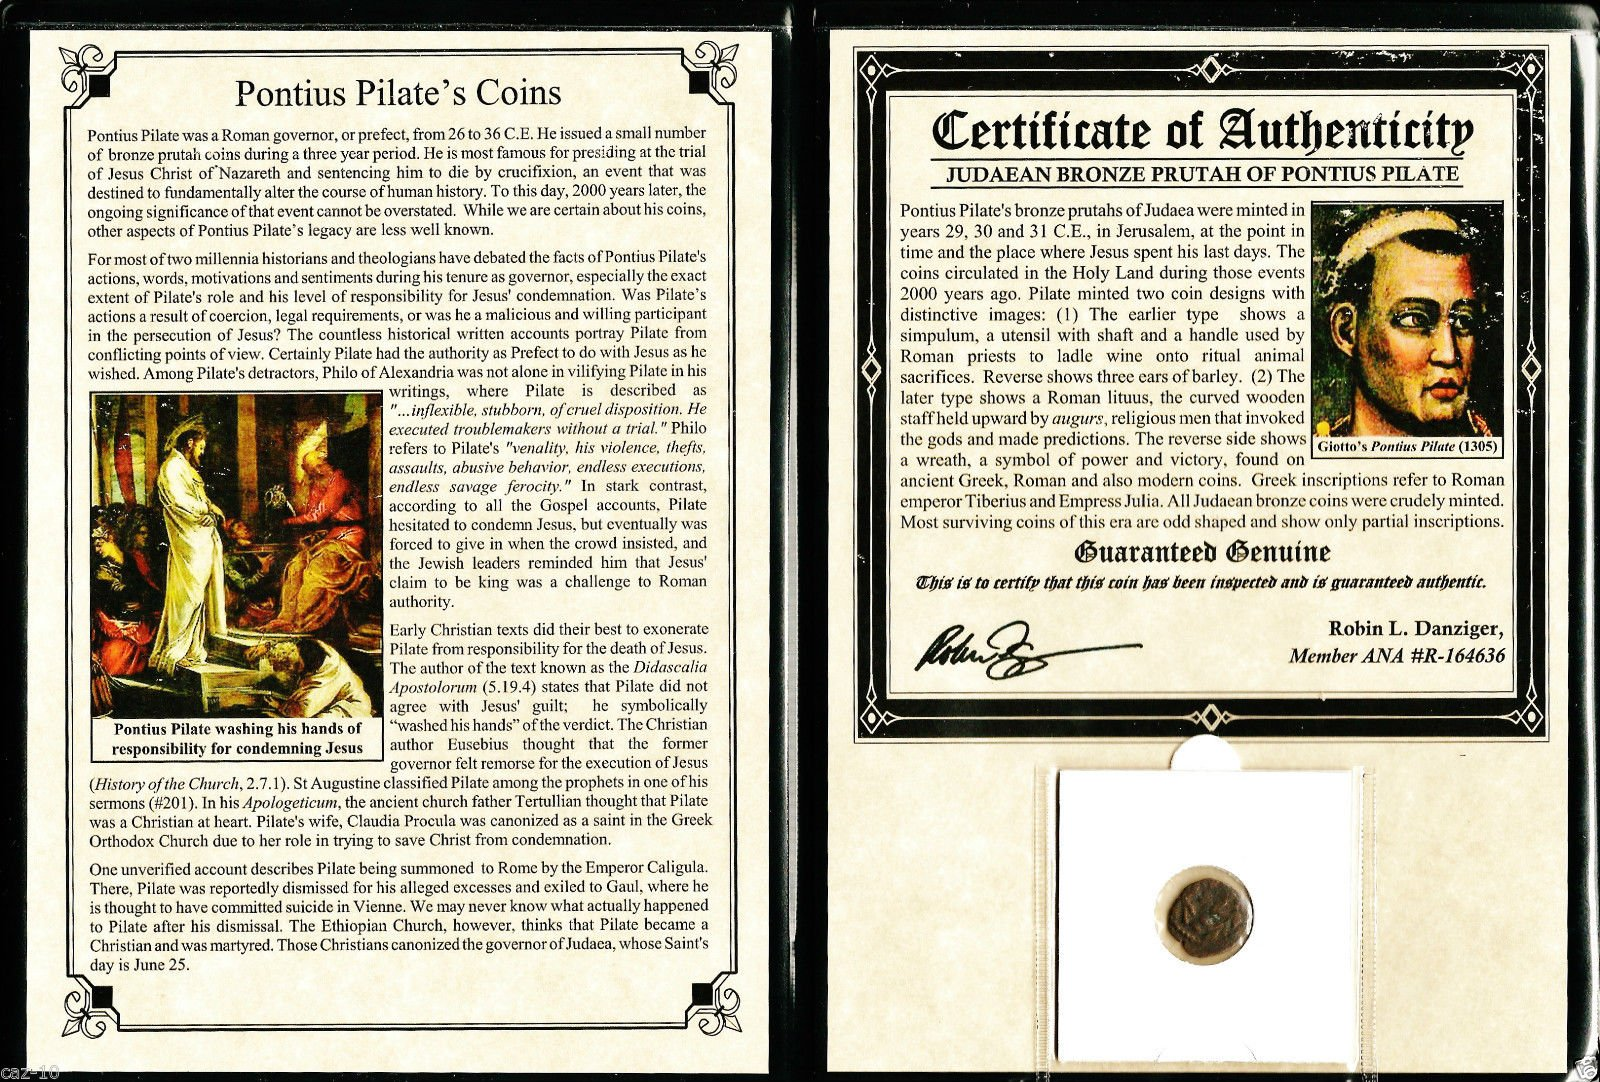 Pontius Pilate Coin with Album and Certificate